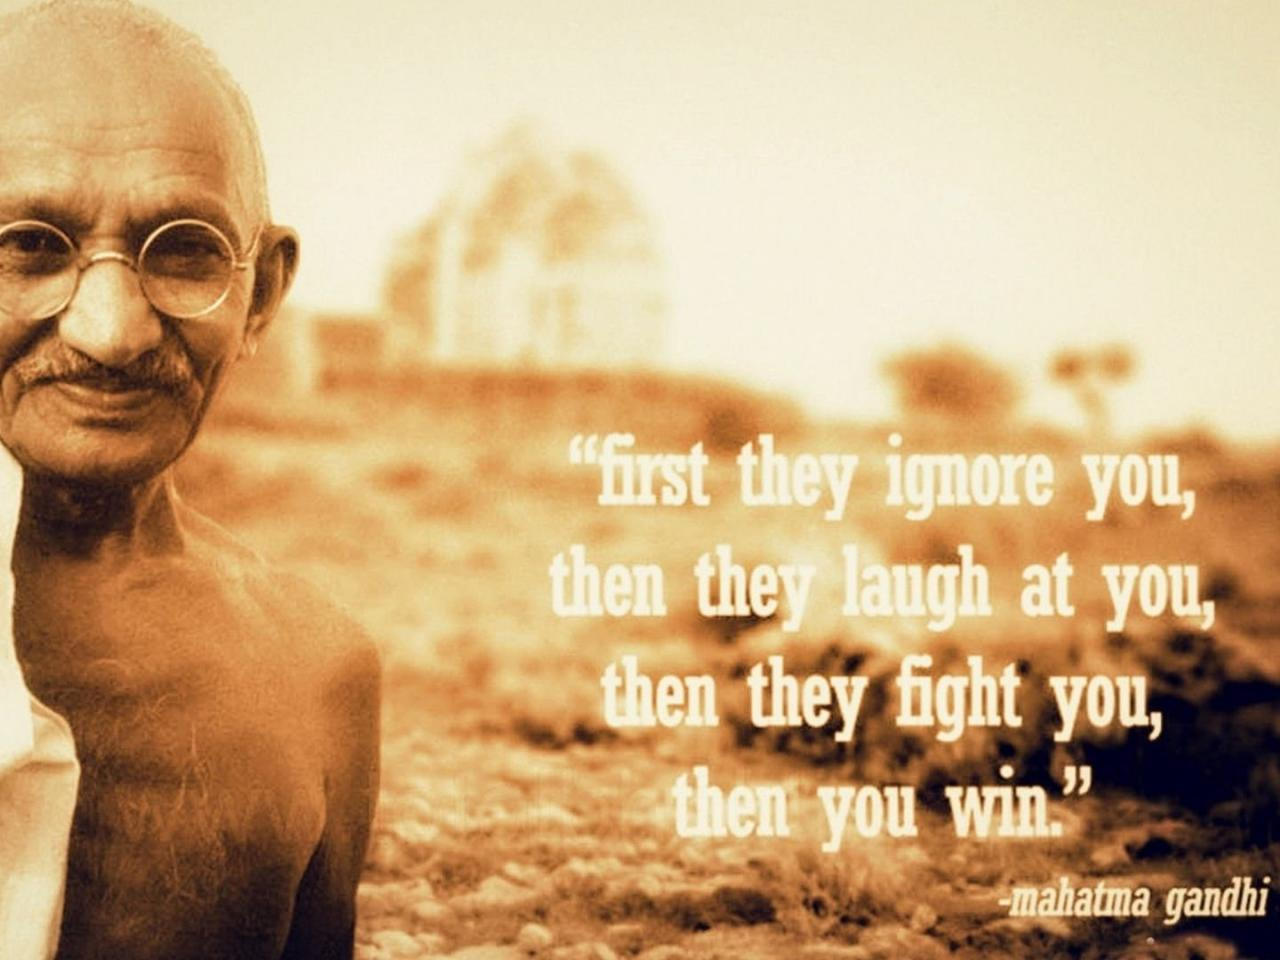 High Definition Pictures Of People Mahatma Gandhi From